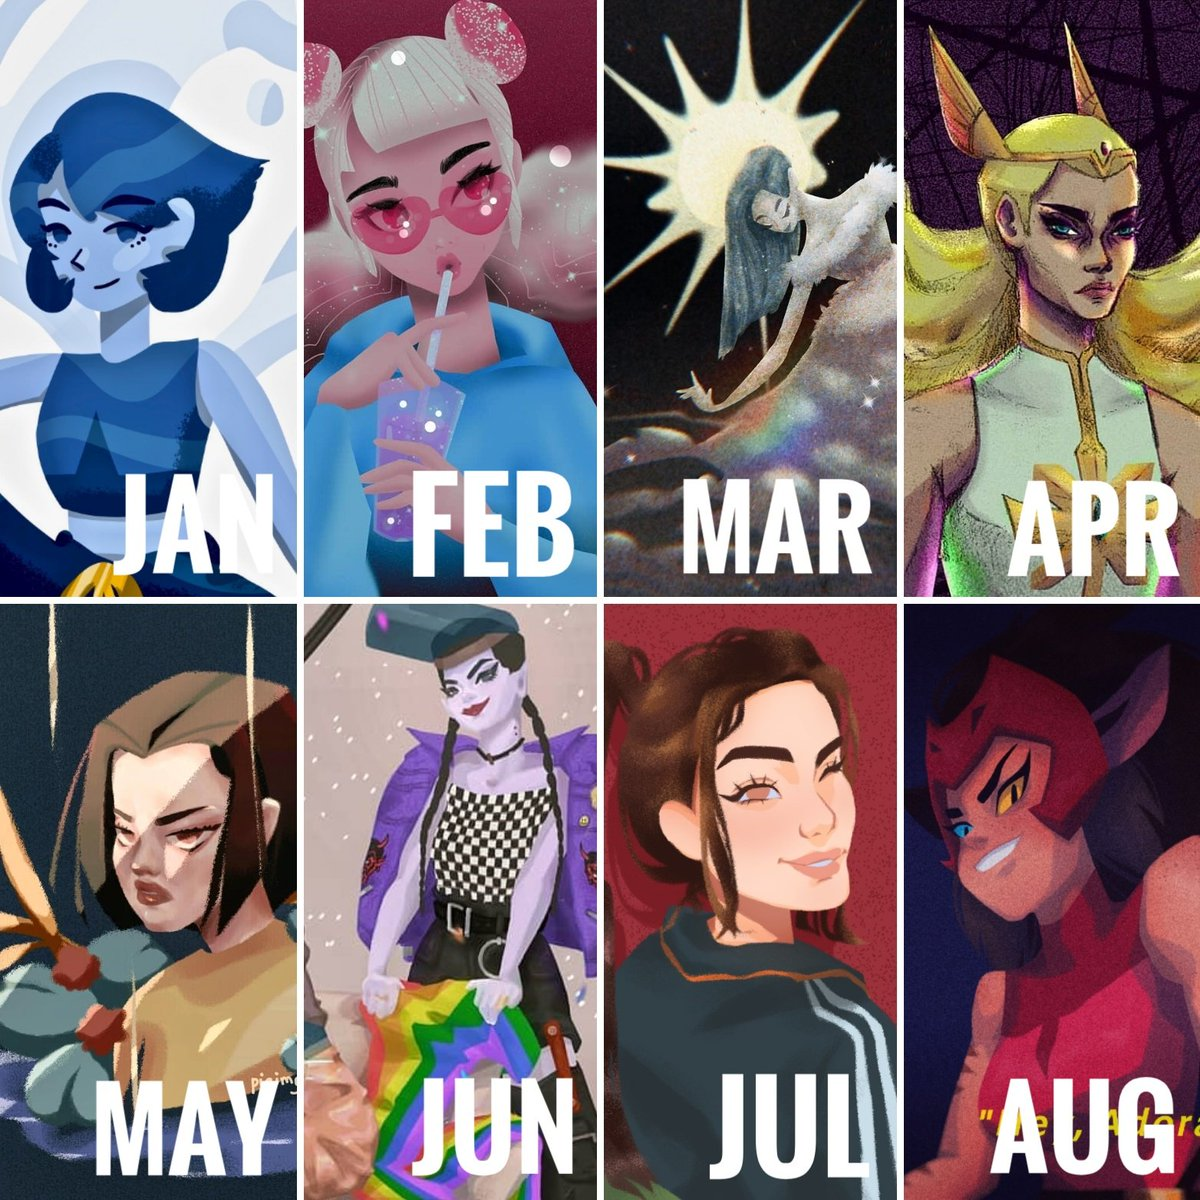 start                                 end of the                               of the decade                            decade  to more time and consistency this 2020 •.°♡•.° /rip sept to dec/ #artph #2019ArtistWrapped  <br>http://pic.twitter.com/W0wlz5QrtC